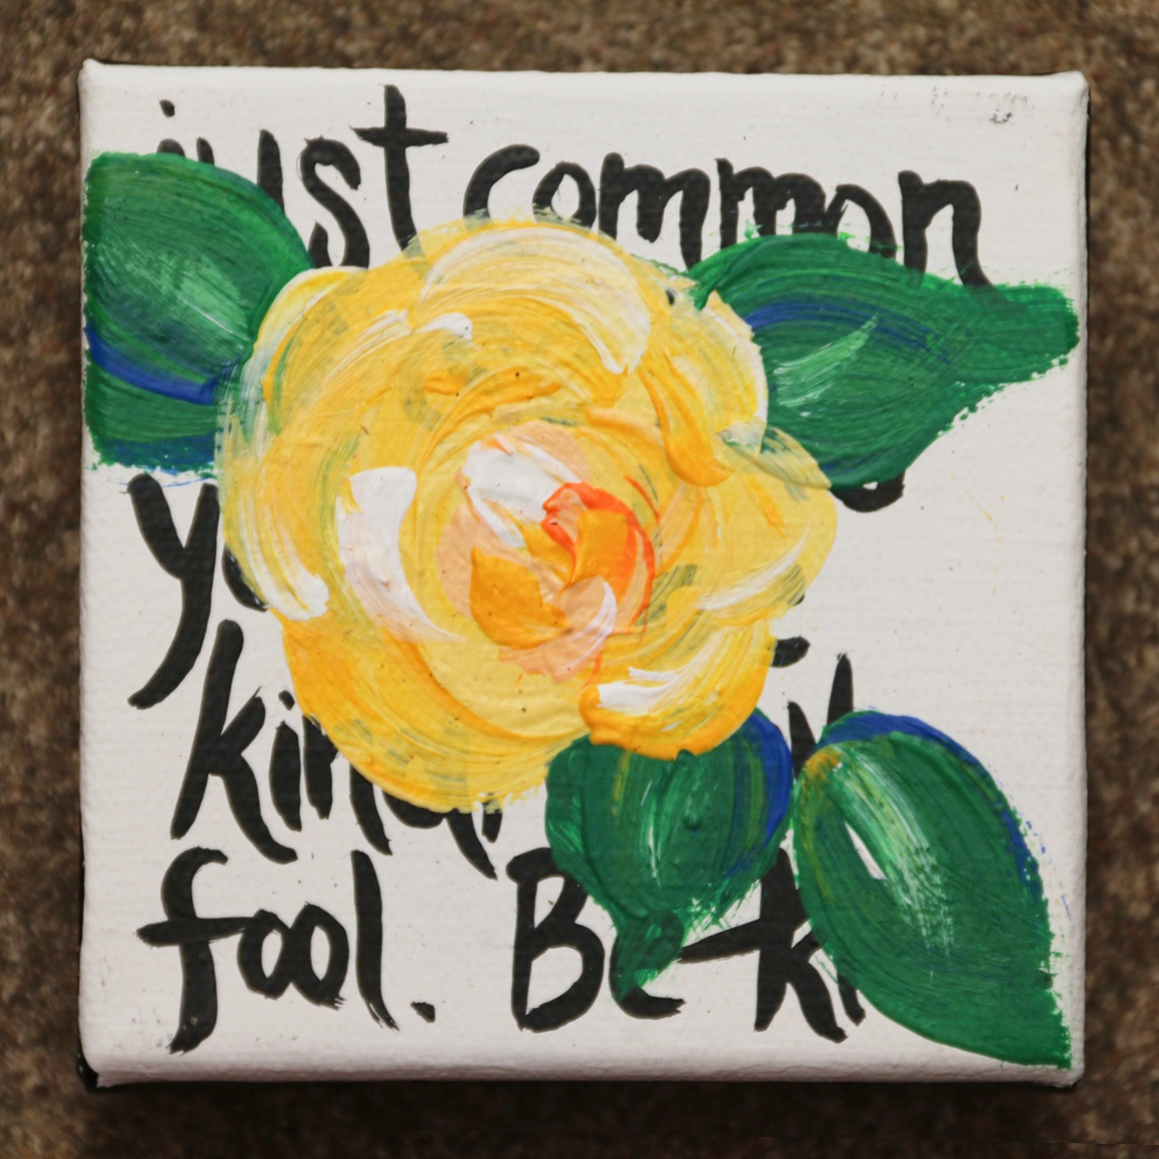 11. Just common sense tells you to be kind, ninny fool. Be kind.